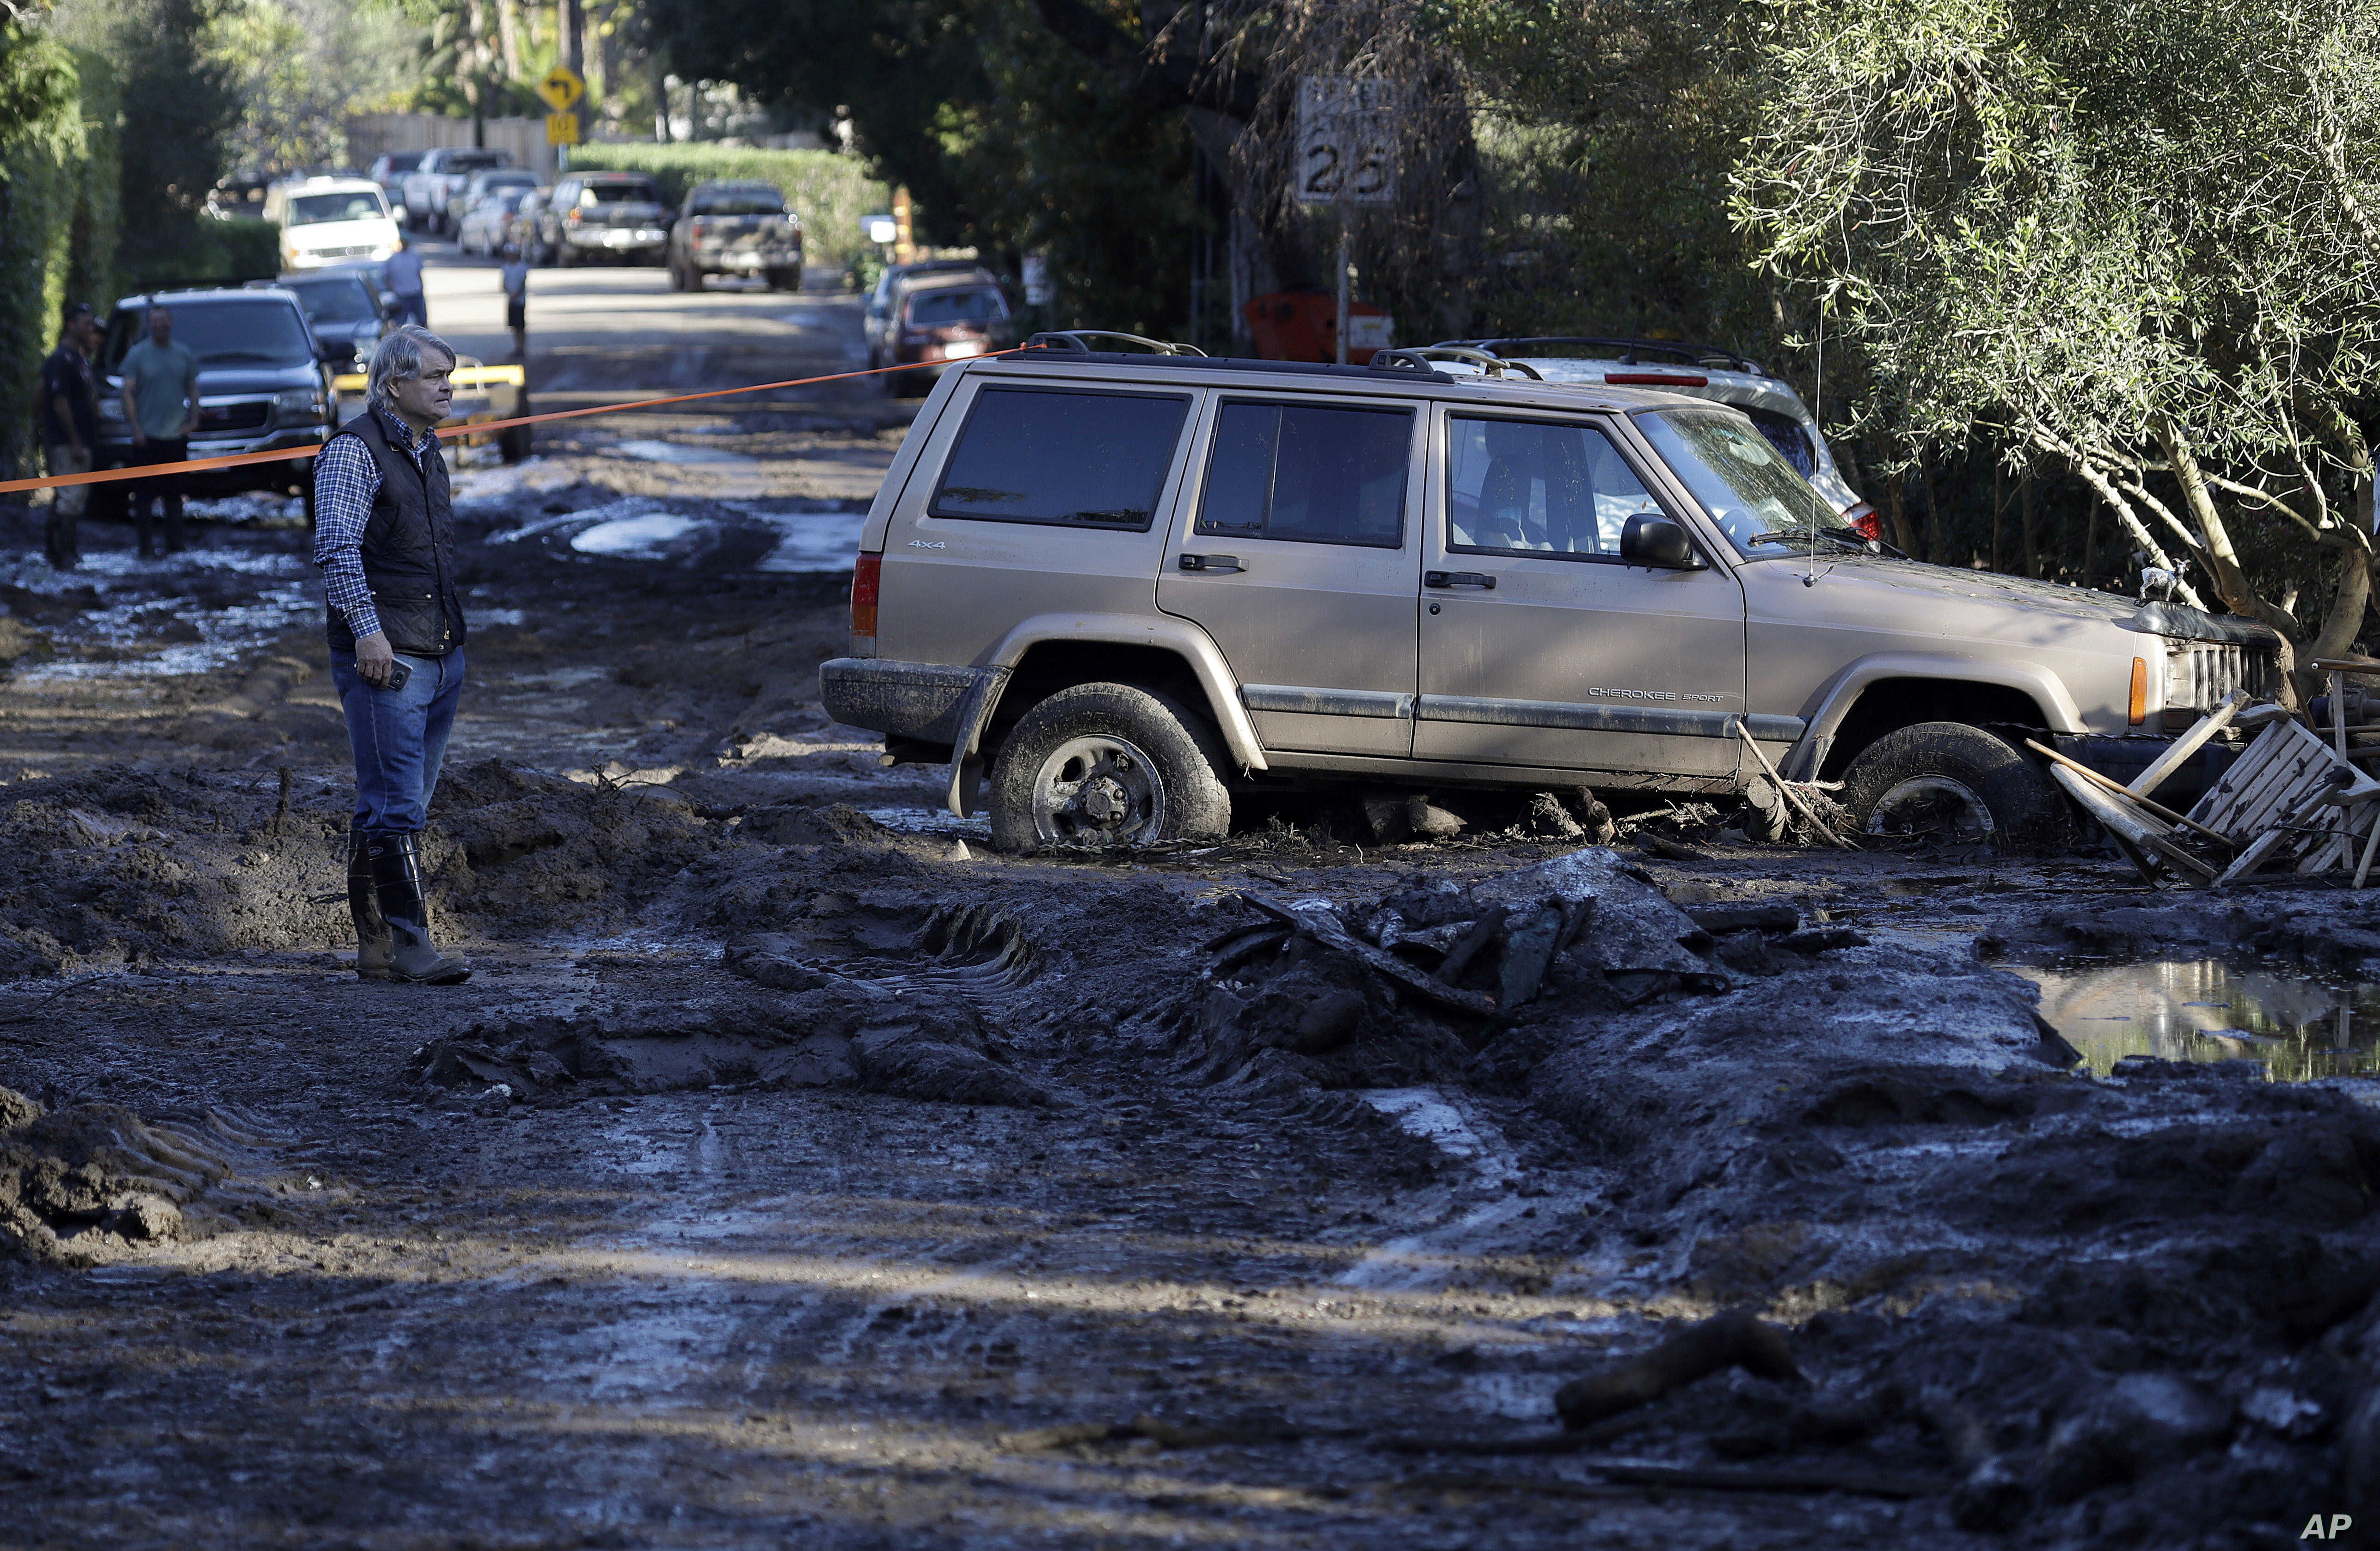 A man stands on a muddy road damaged from storms in Montecito, Calif.,, Jan. 11, 2018. Rescue workers slogged through knee-deep ooze and used long poles to probe for bodies as the search dragged on for victims of the mudslides that slammed this wealt...